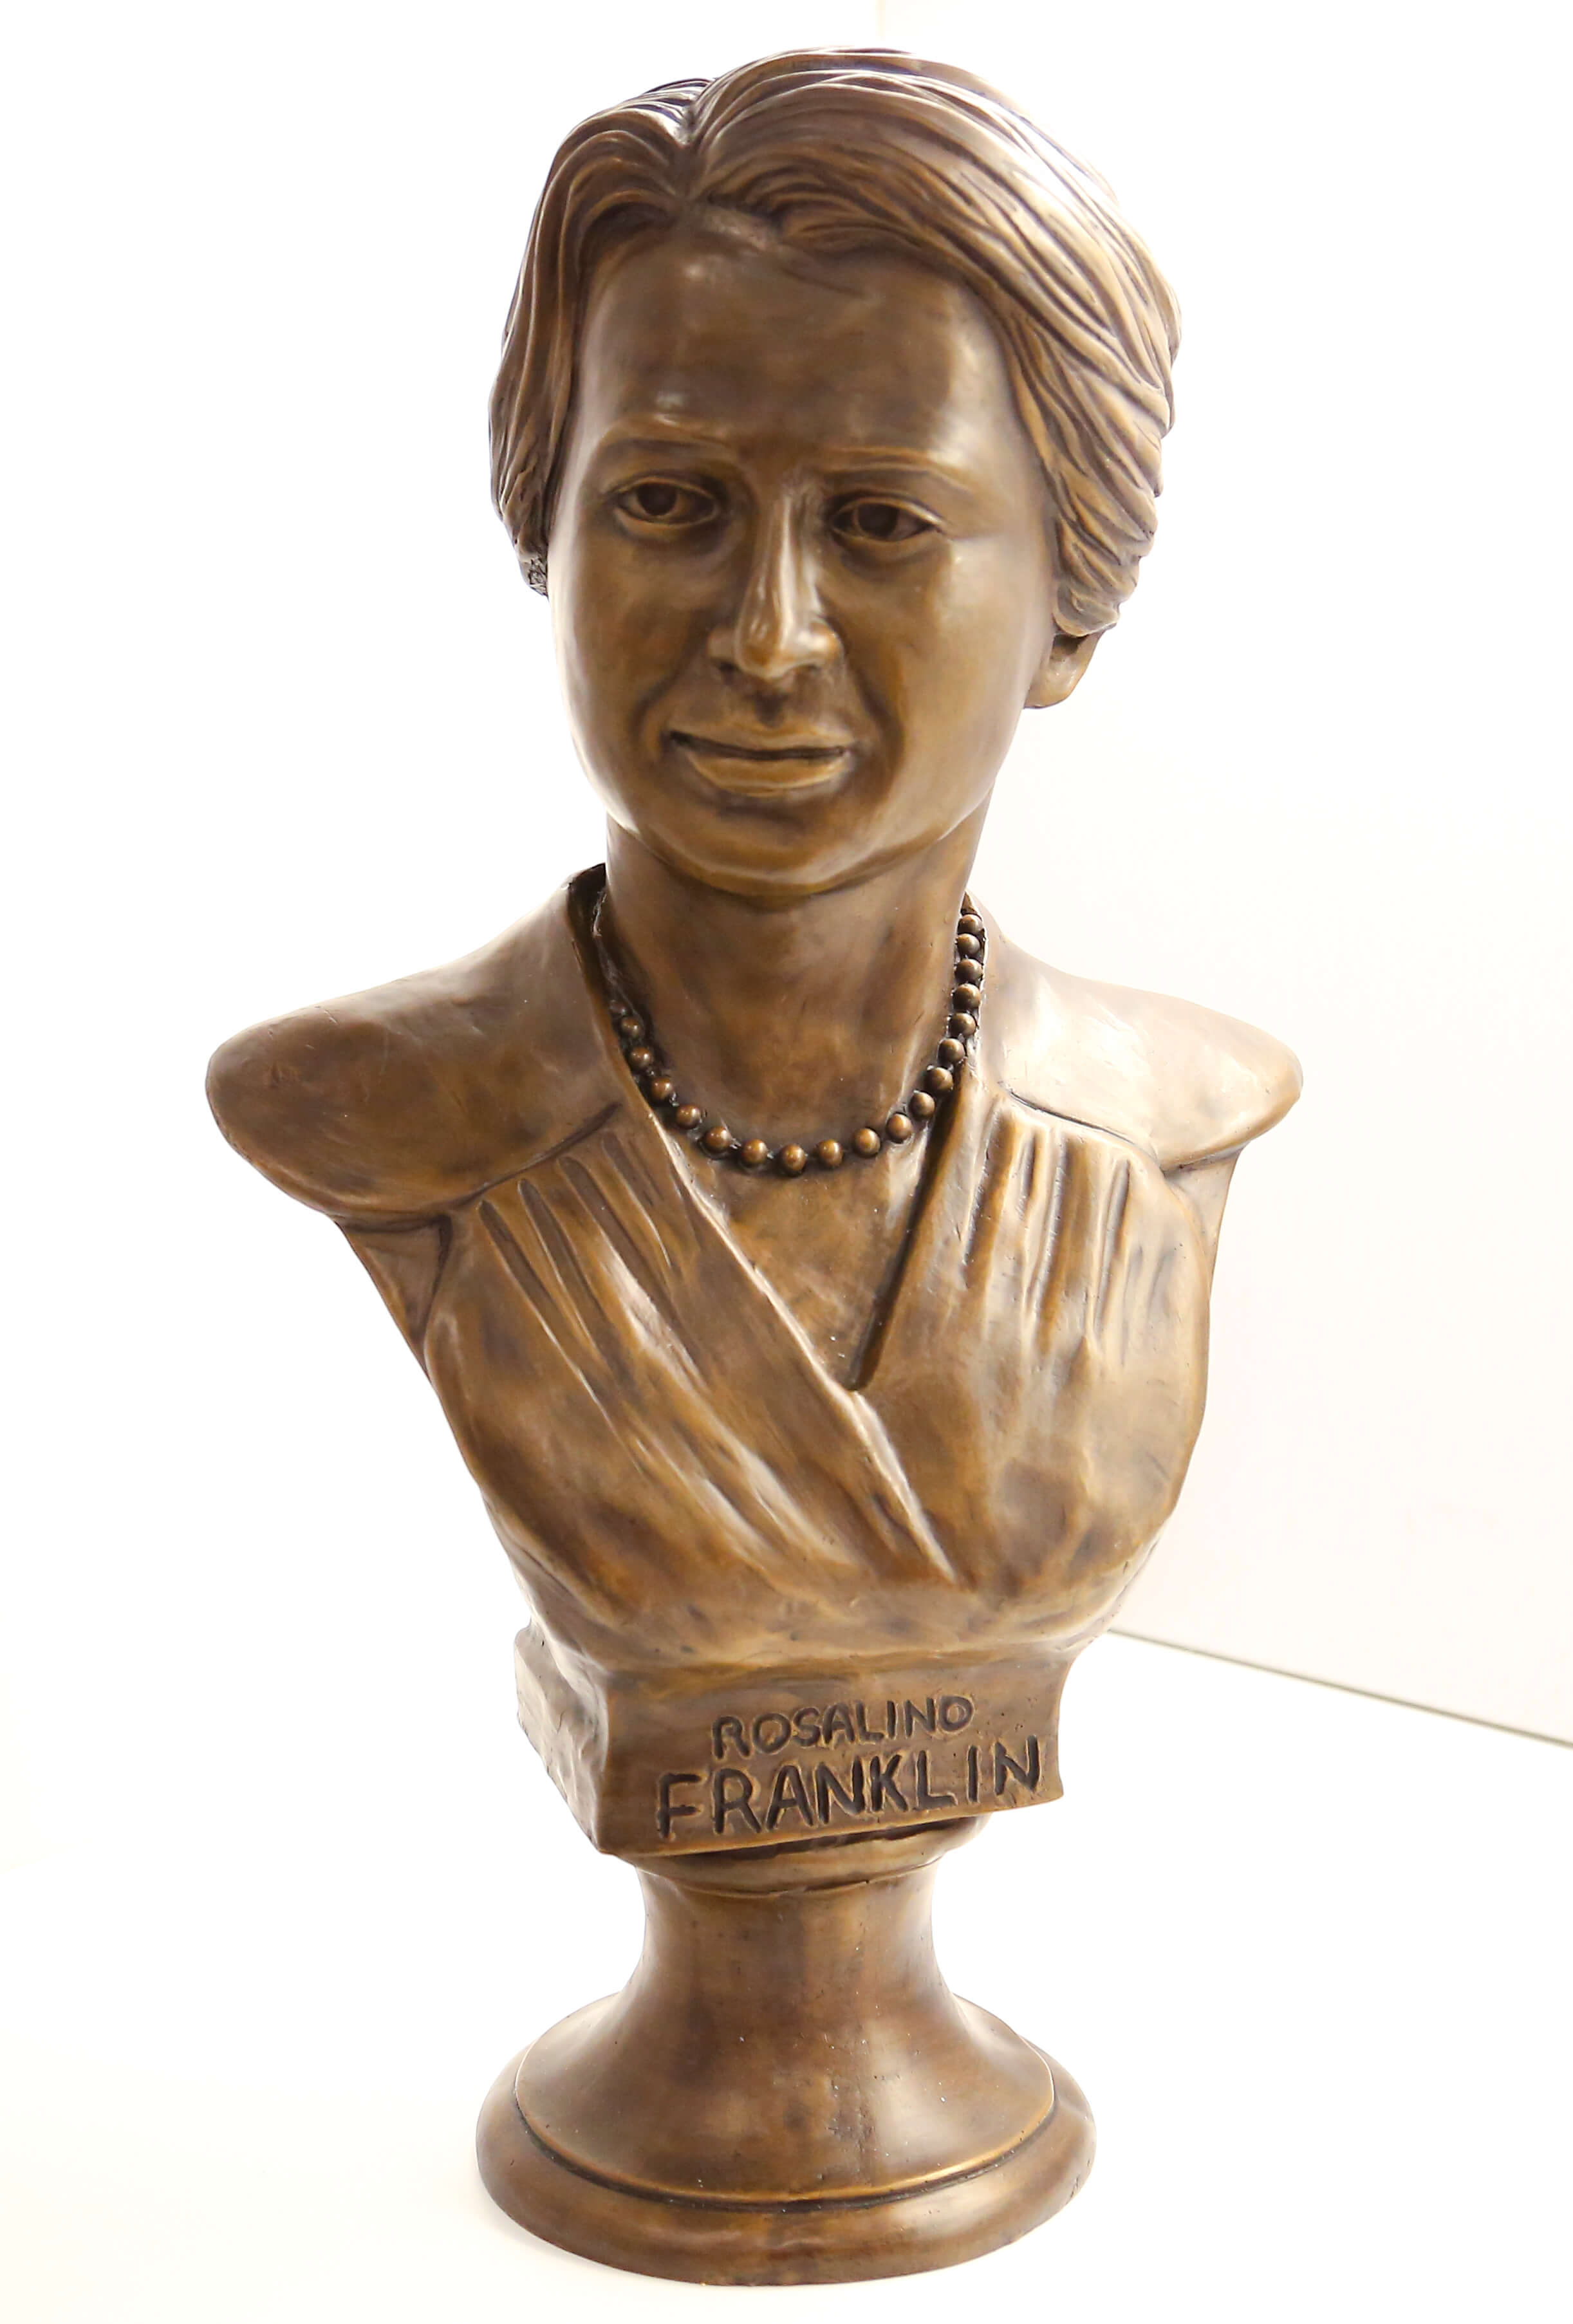 The Rosalind Franklin Award